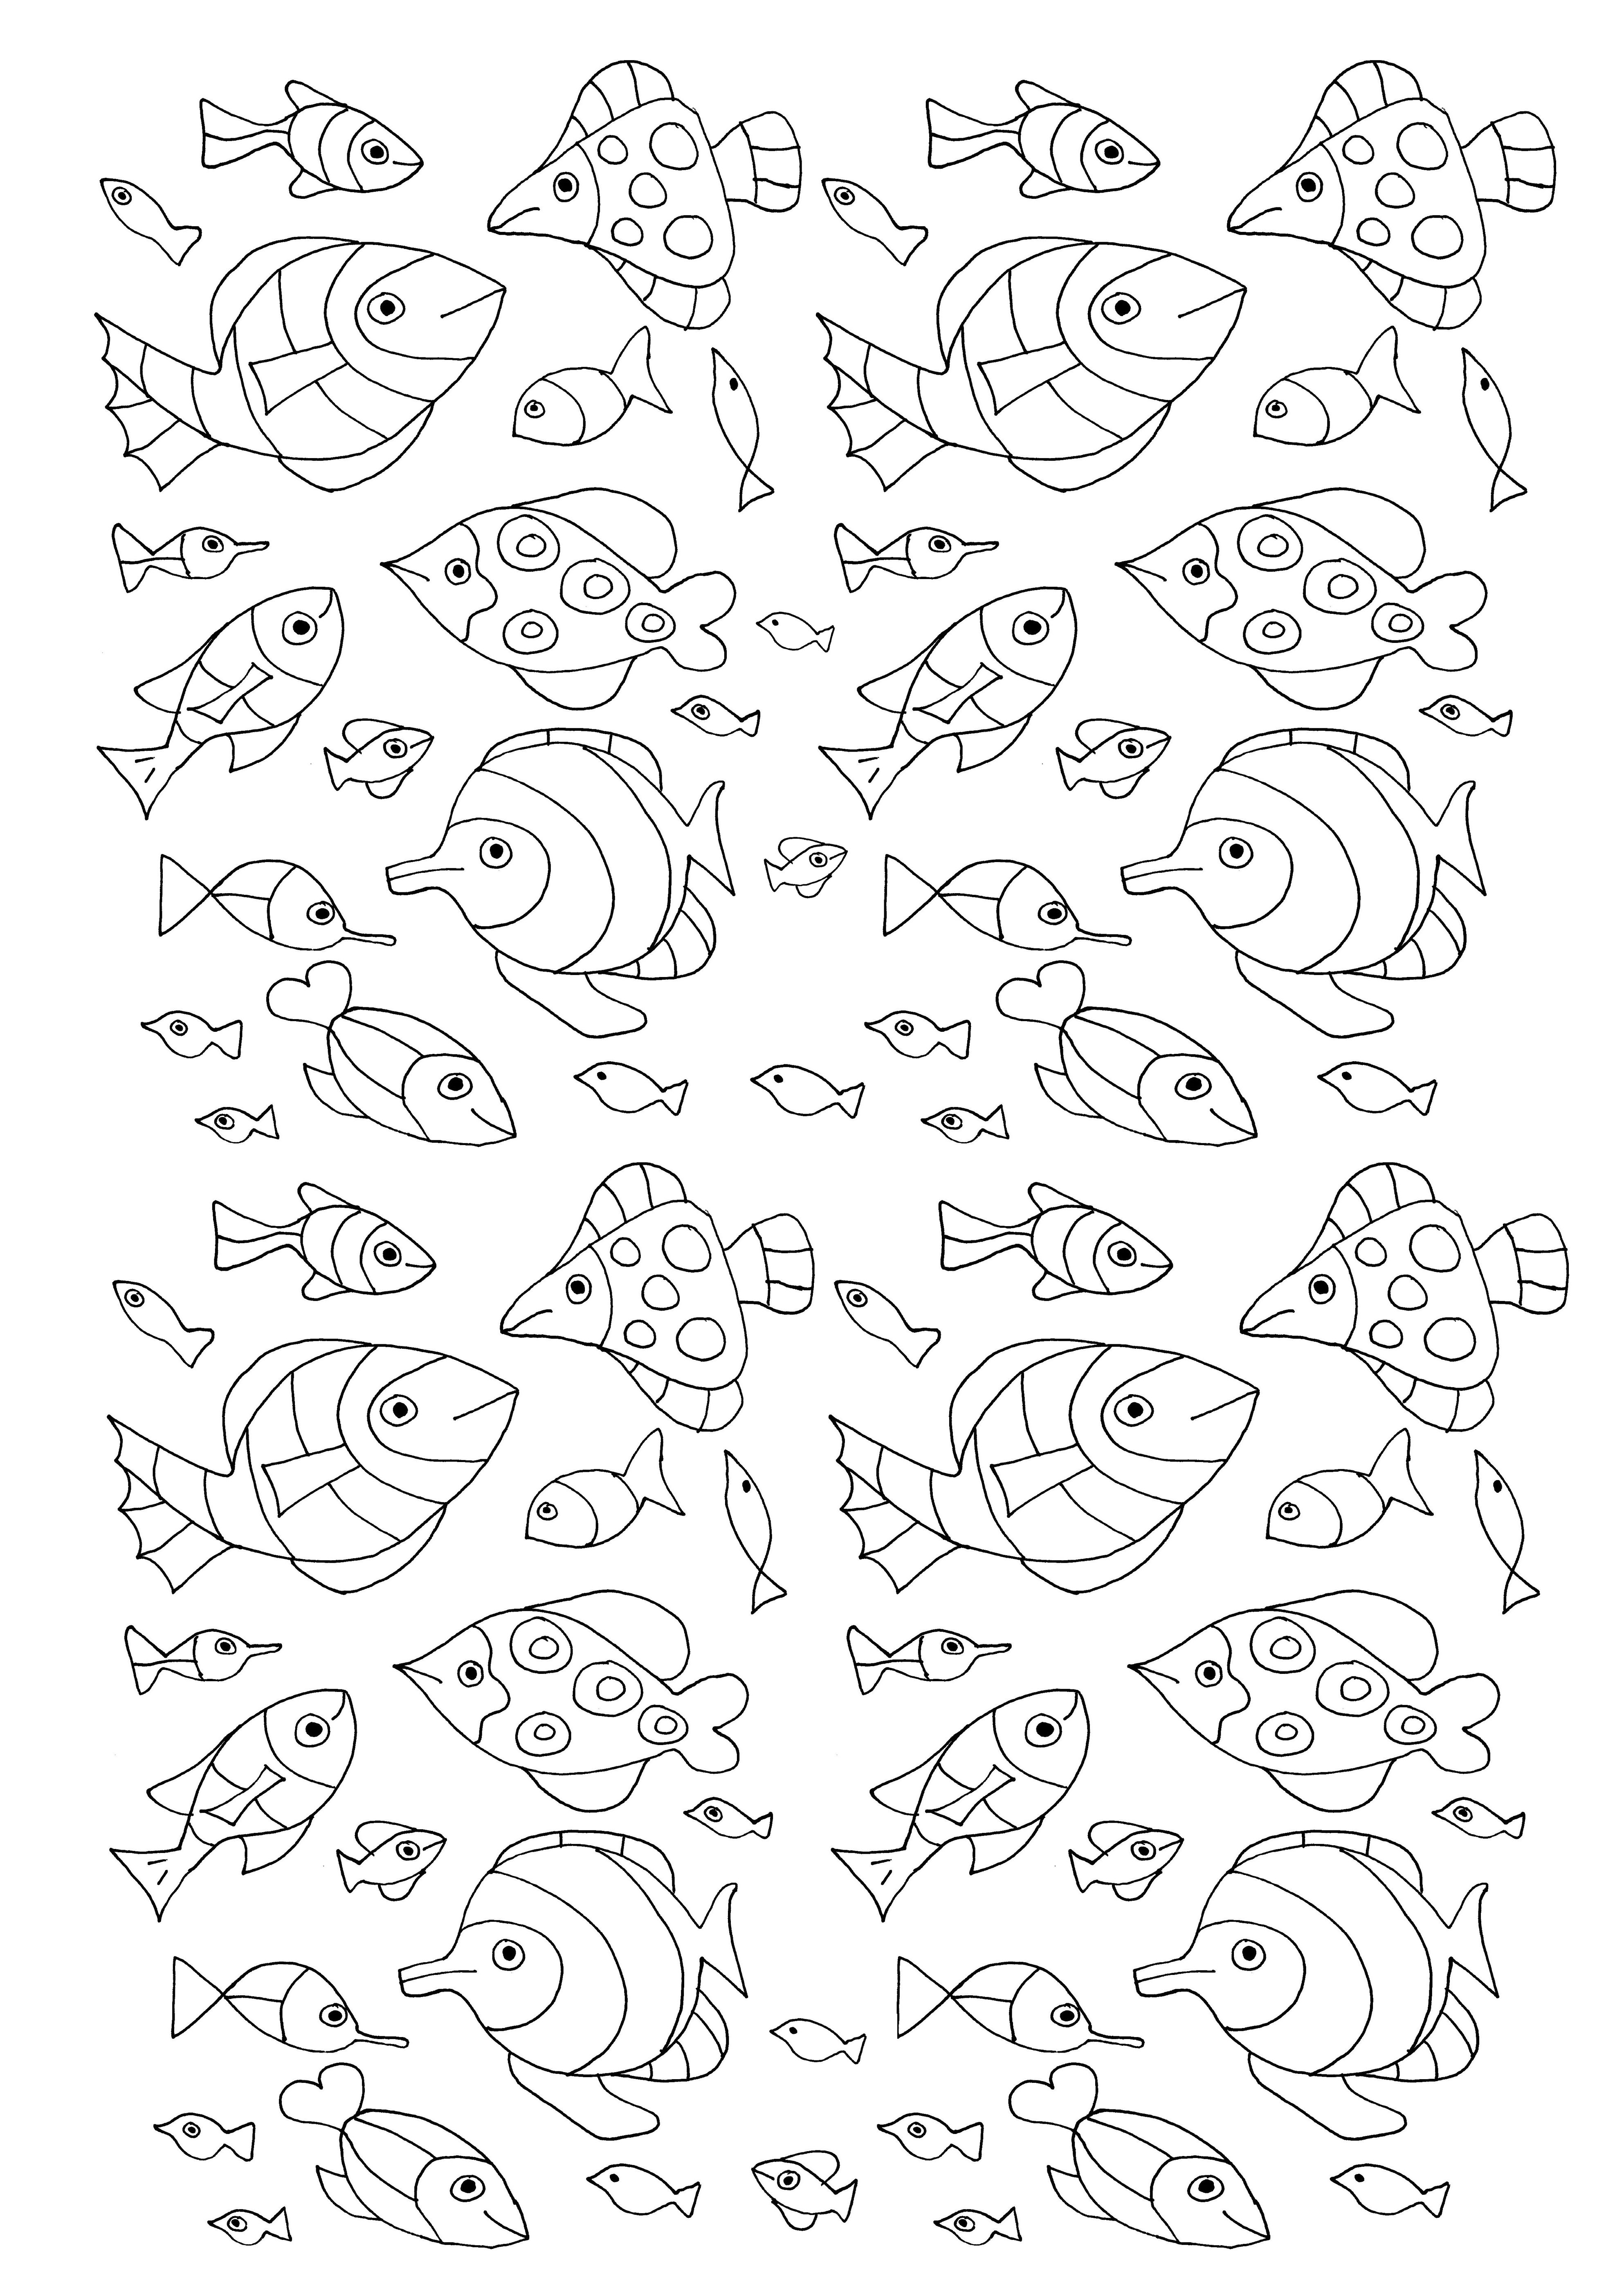 Numerous fish Water worlds Adult Coloring Pages